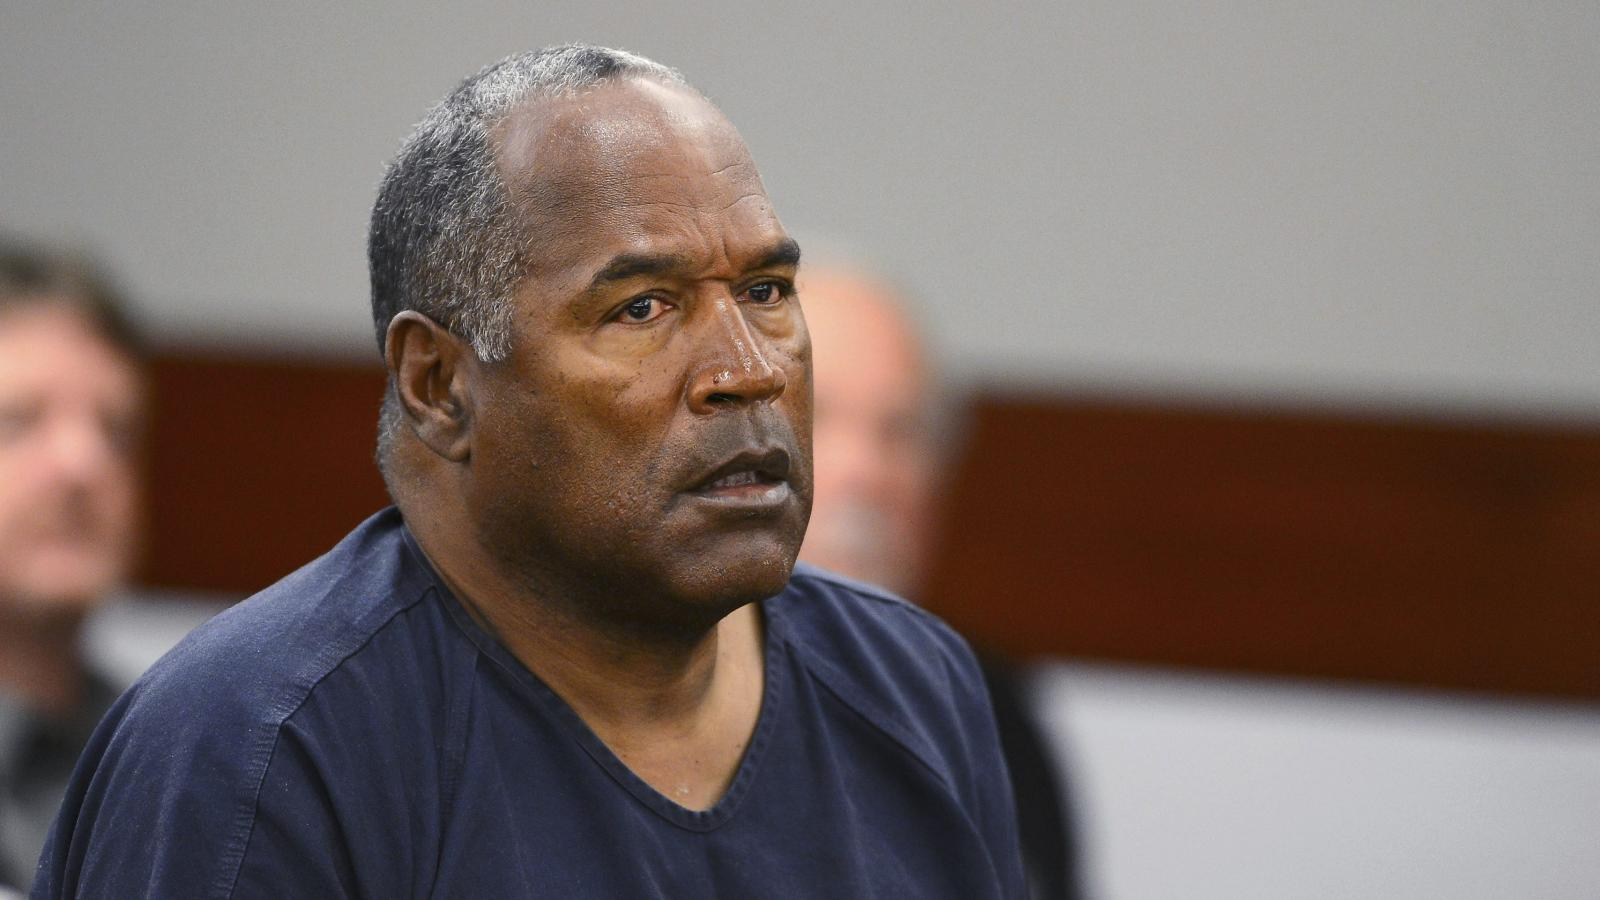 O.J. Simpson joins Twitter - I got some getting even to do